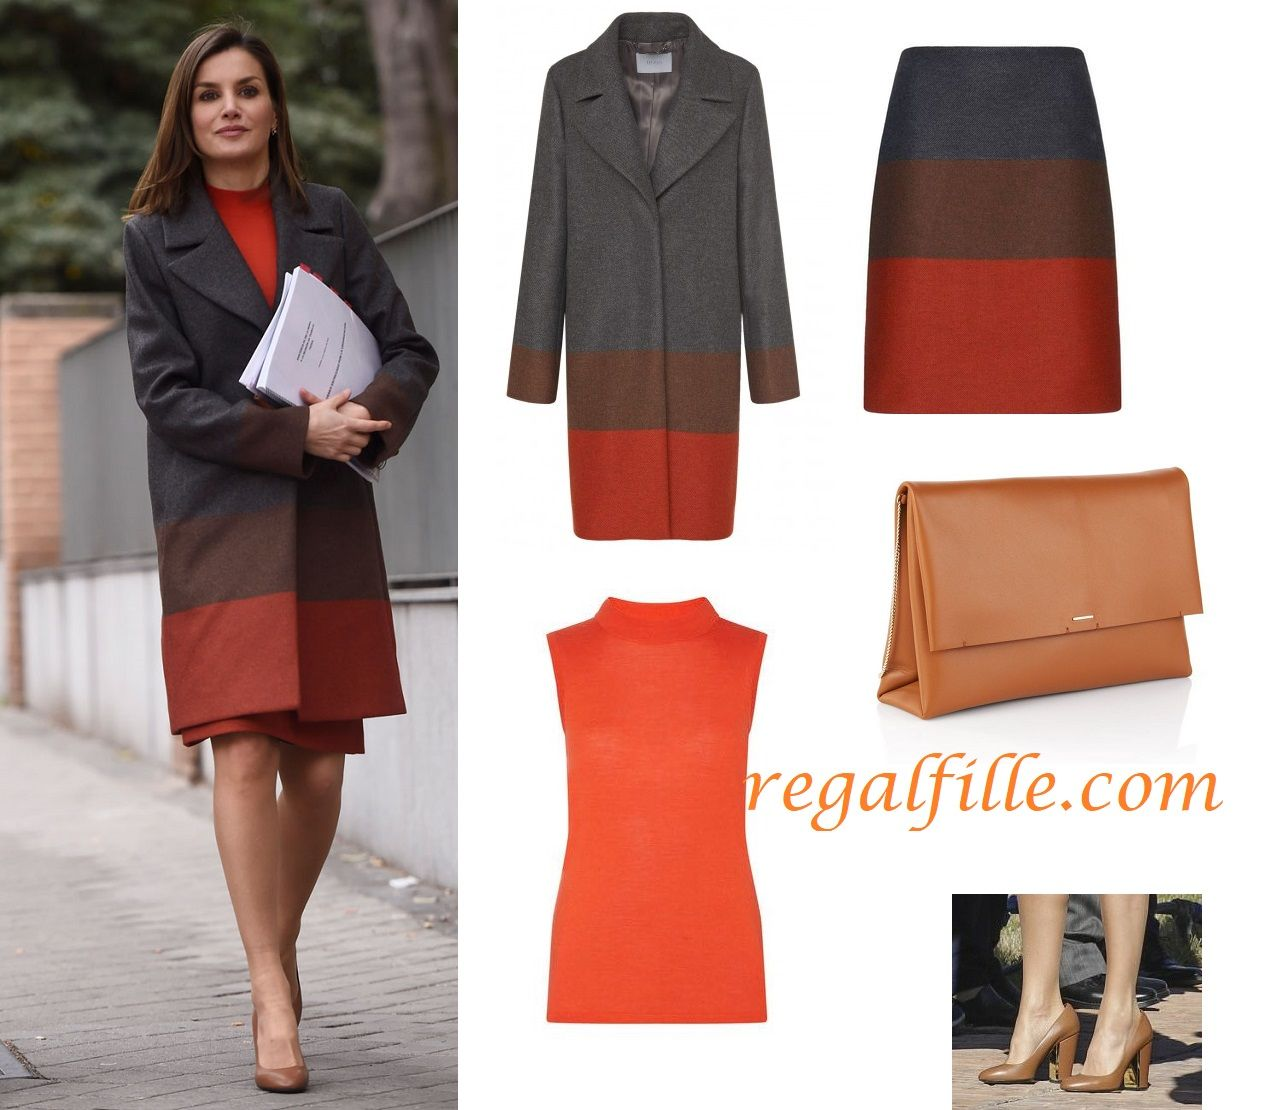 Queen Letizia recycled her Colourful Wardrobe for a Meeting in Madrid